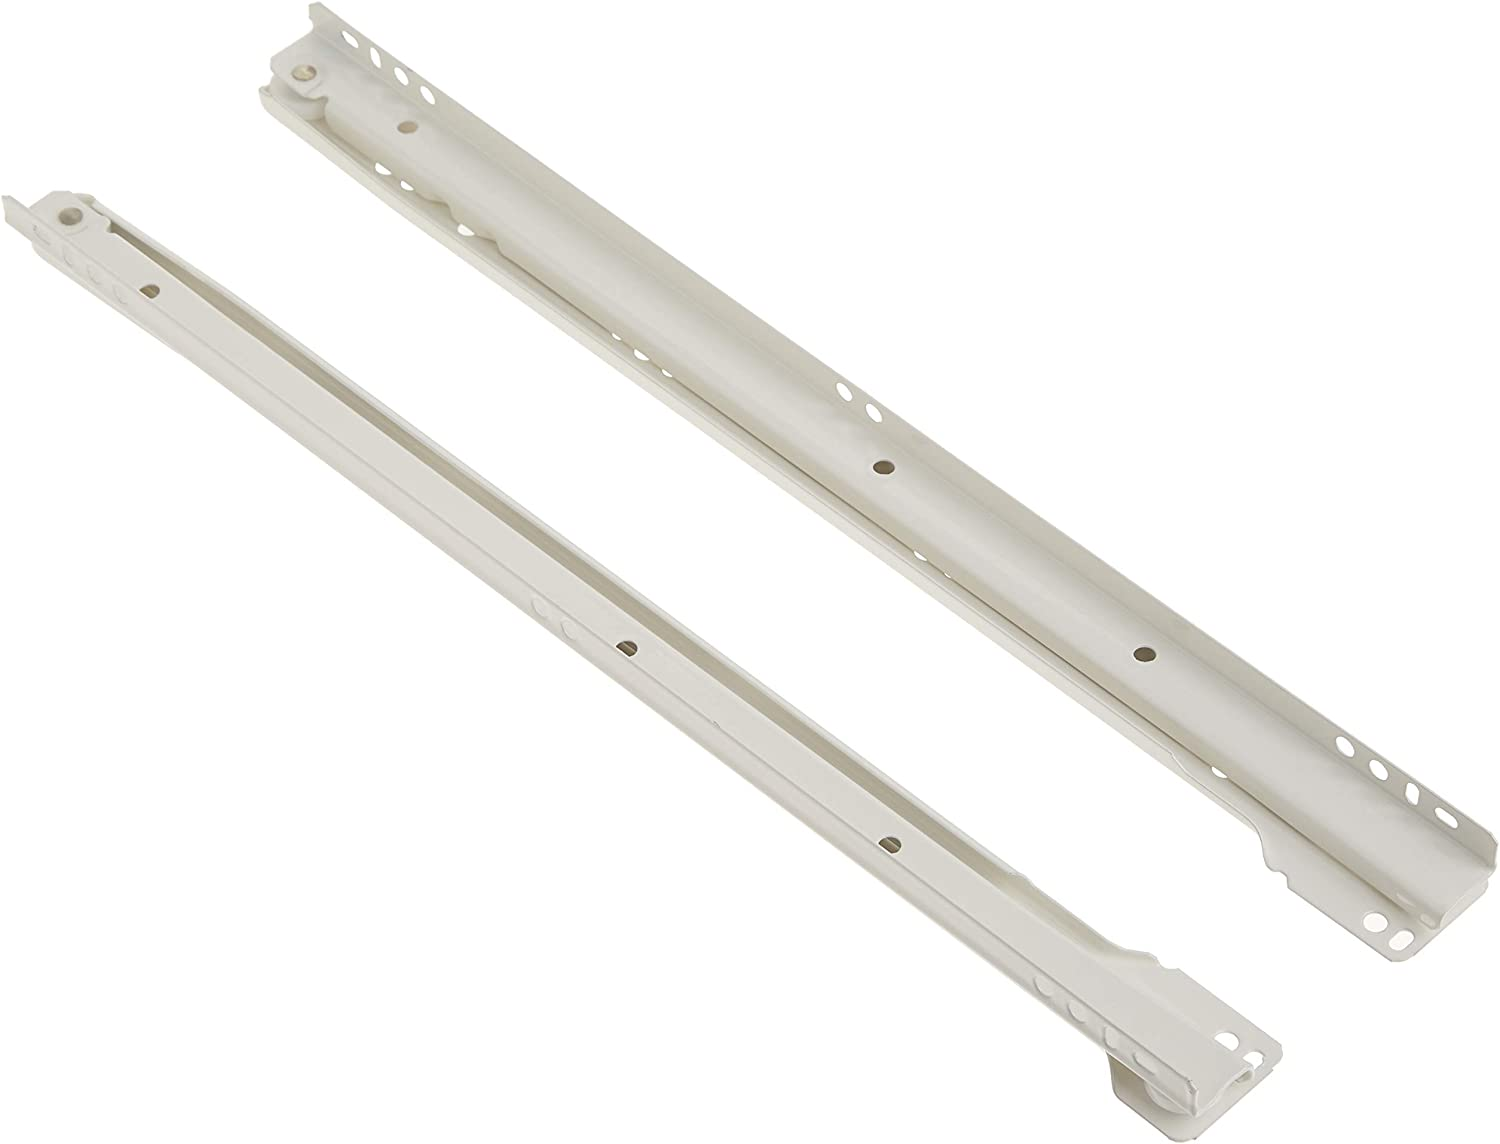 "Prime-Line R 7210 Drawer Slide Kit – Replace Drawer Track Hardware, 15-3/4"" Steel Tracks"